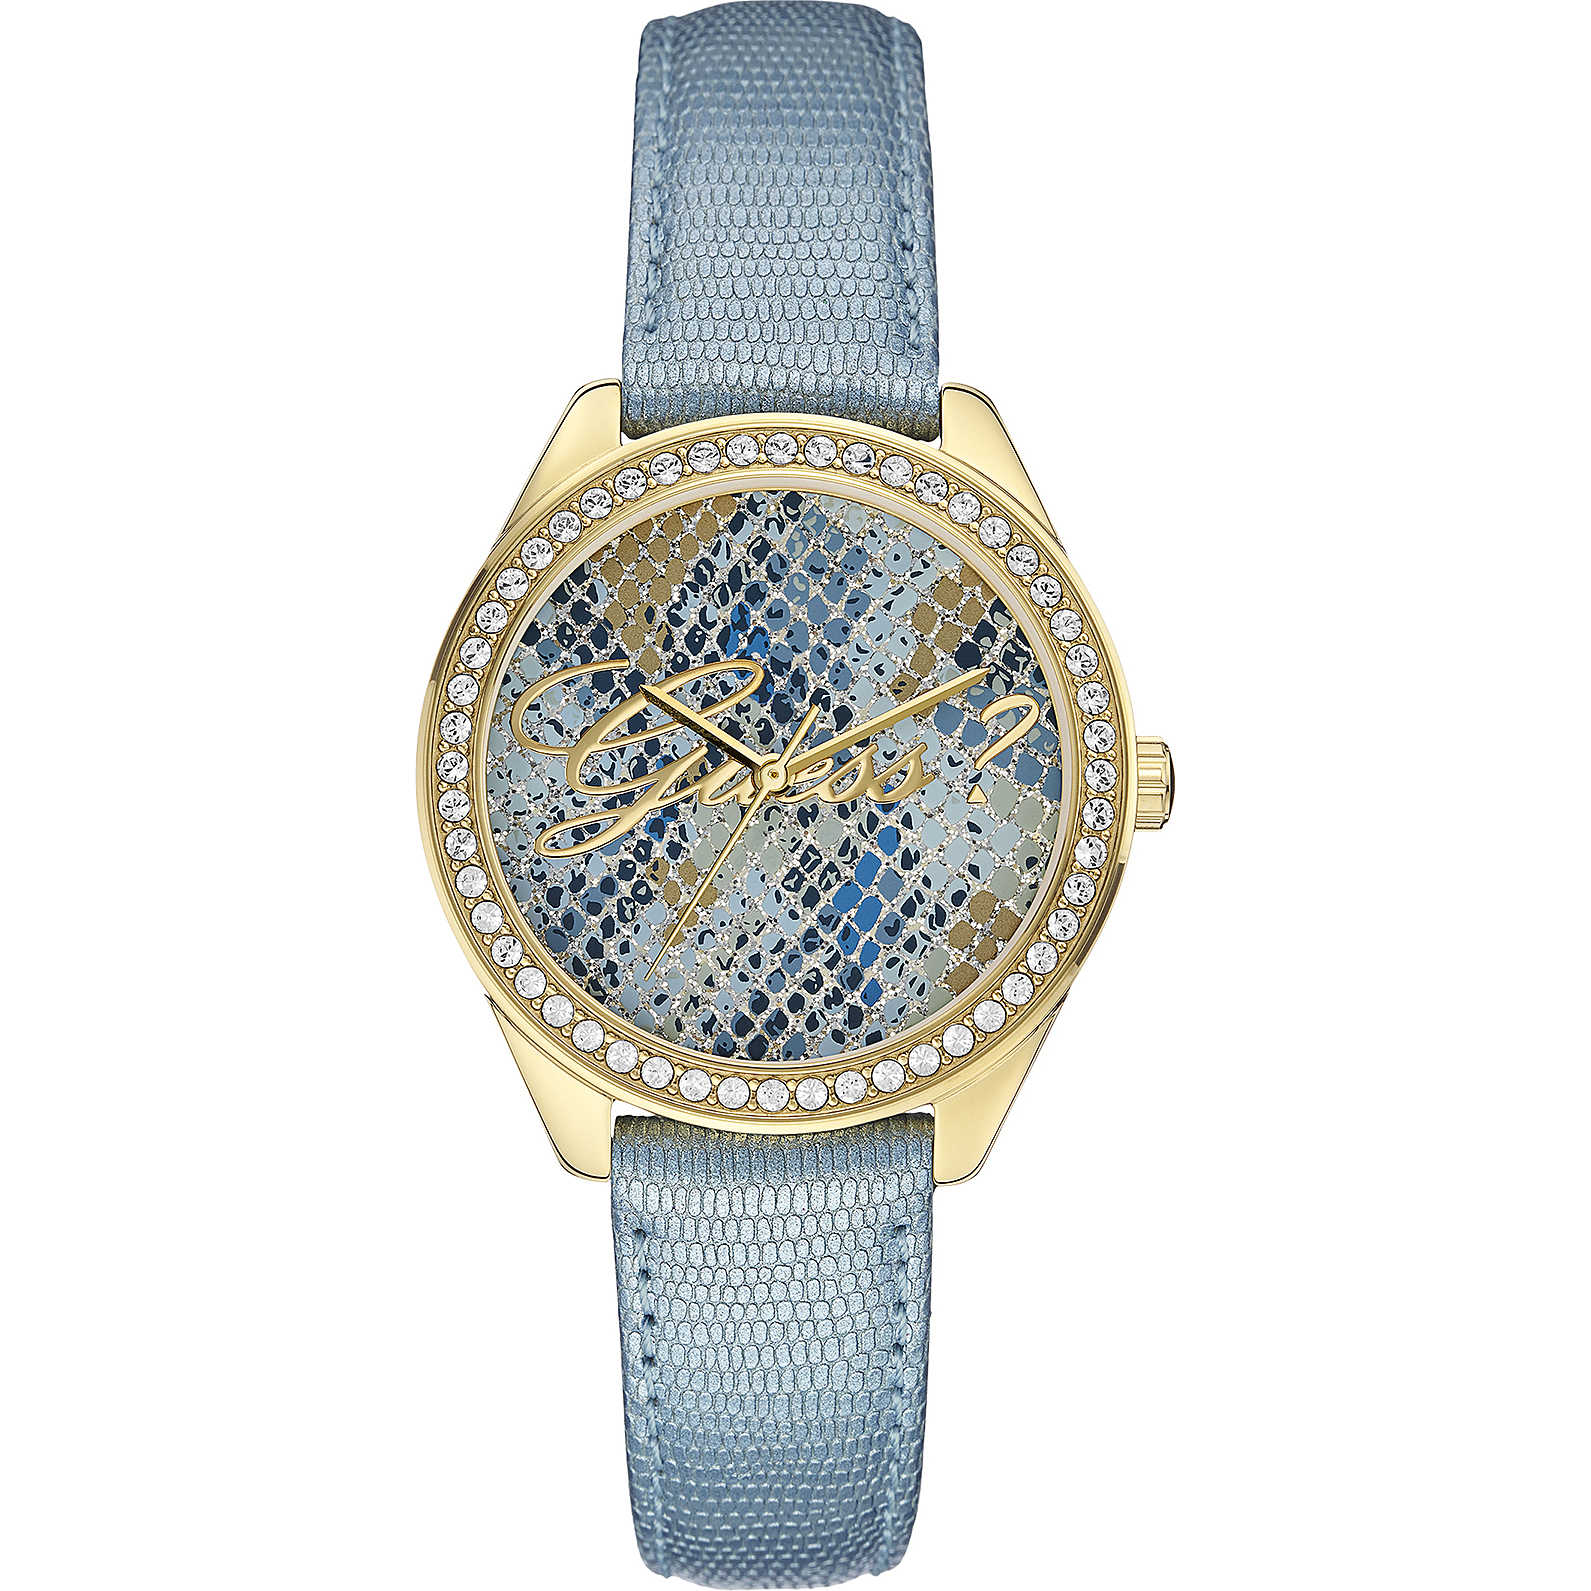 Orologio donna Guess W0612L1 ICE BLUE